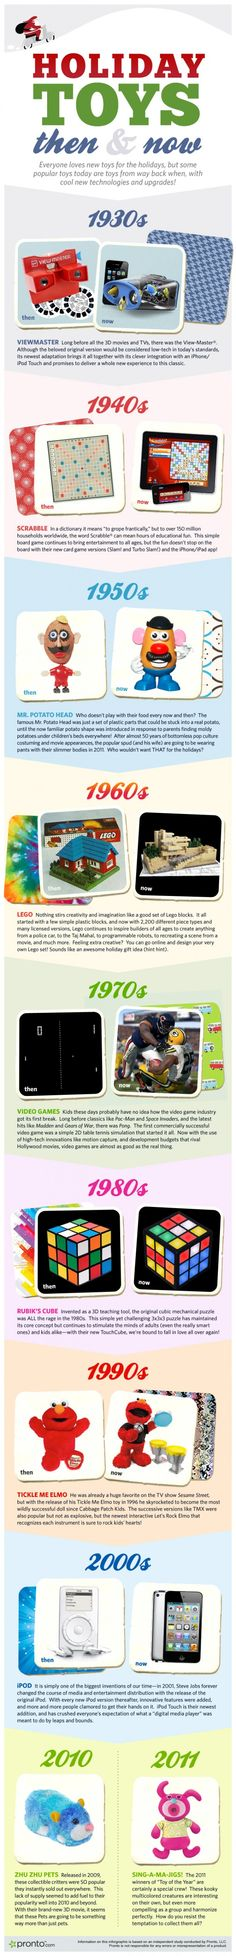 Holiday Toys -Then & Now